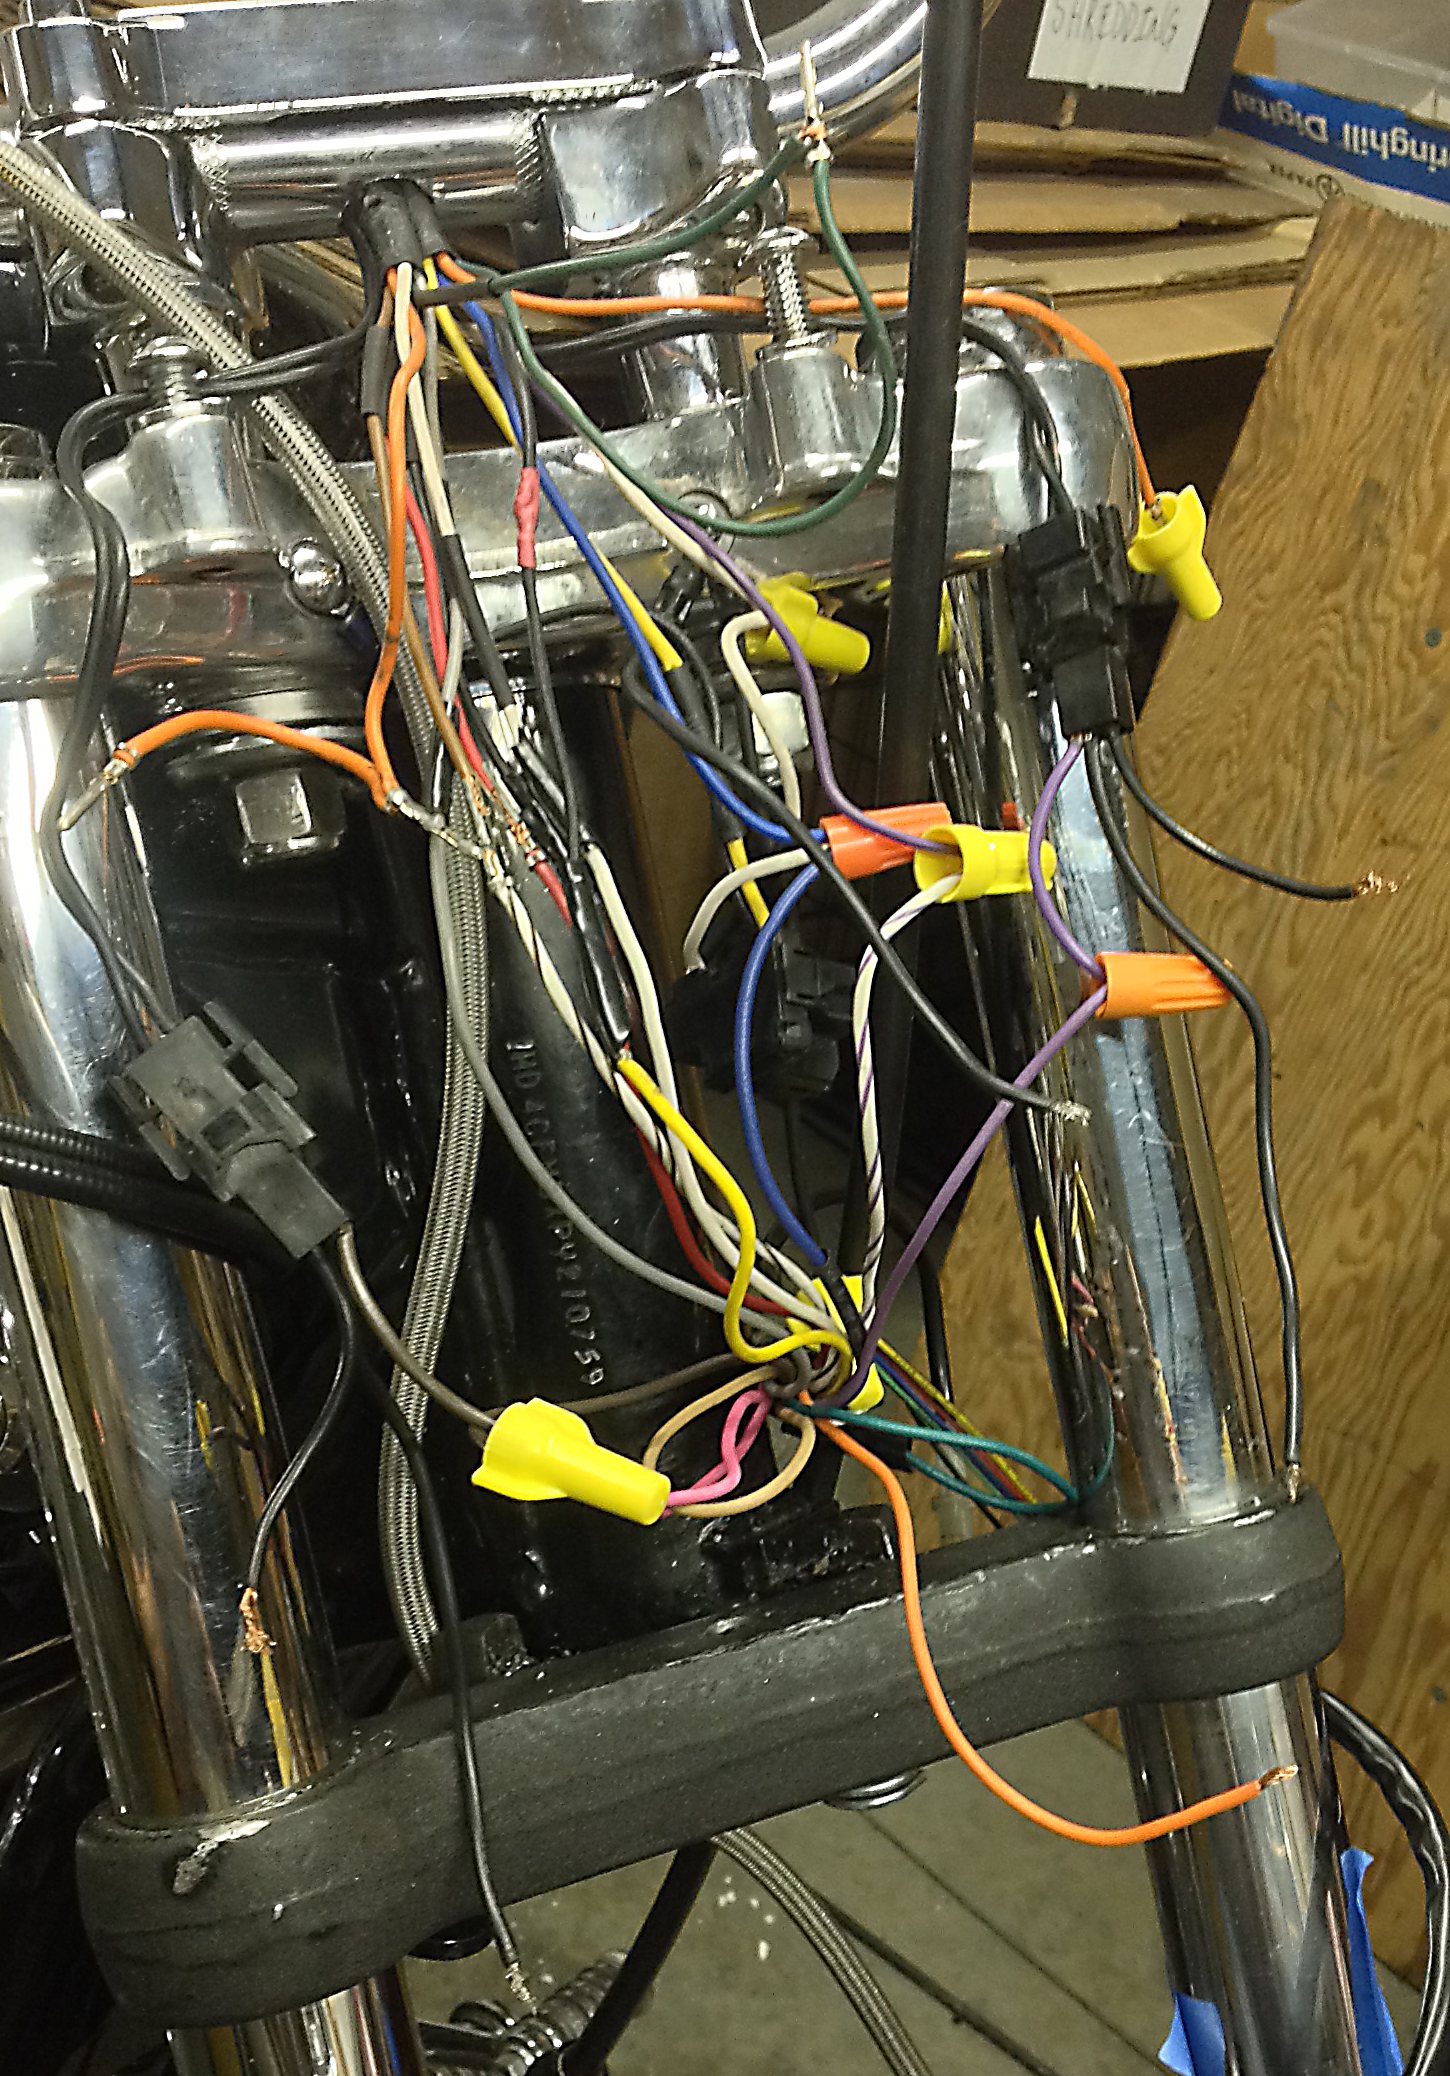 harley ignition switch wiring diagram sony cdx gt170 1993 sportster xlh -